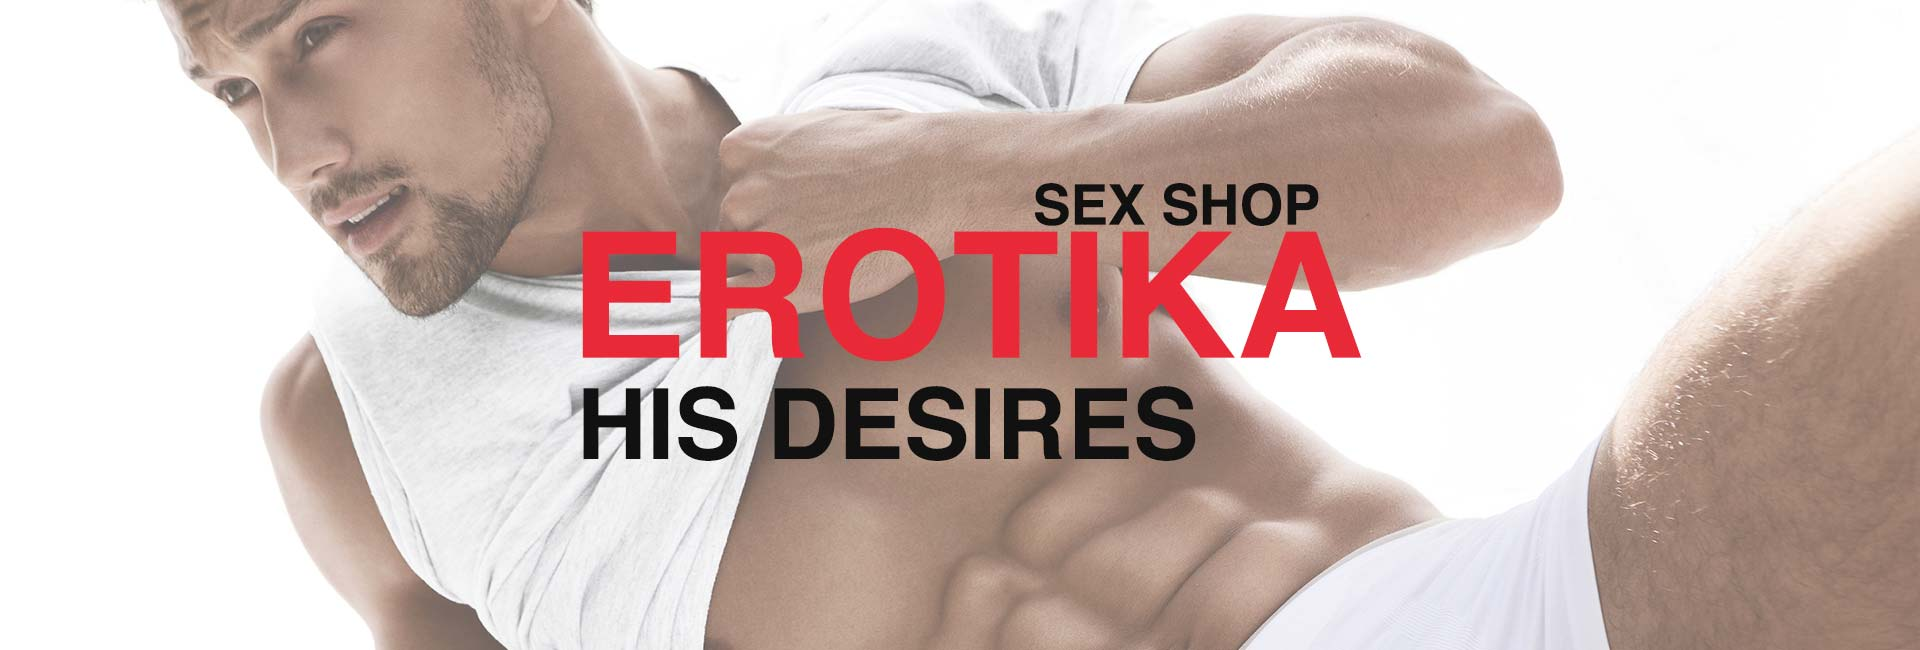 Erotika Online Sex Shop Montreal For Men